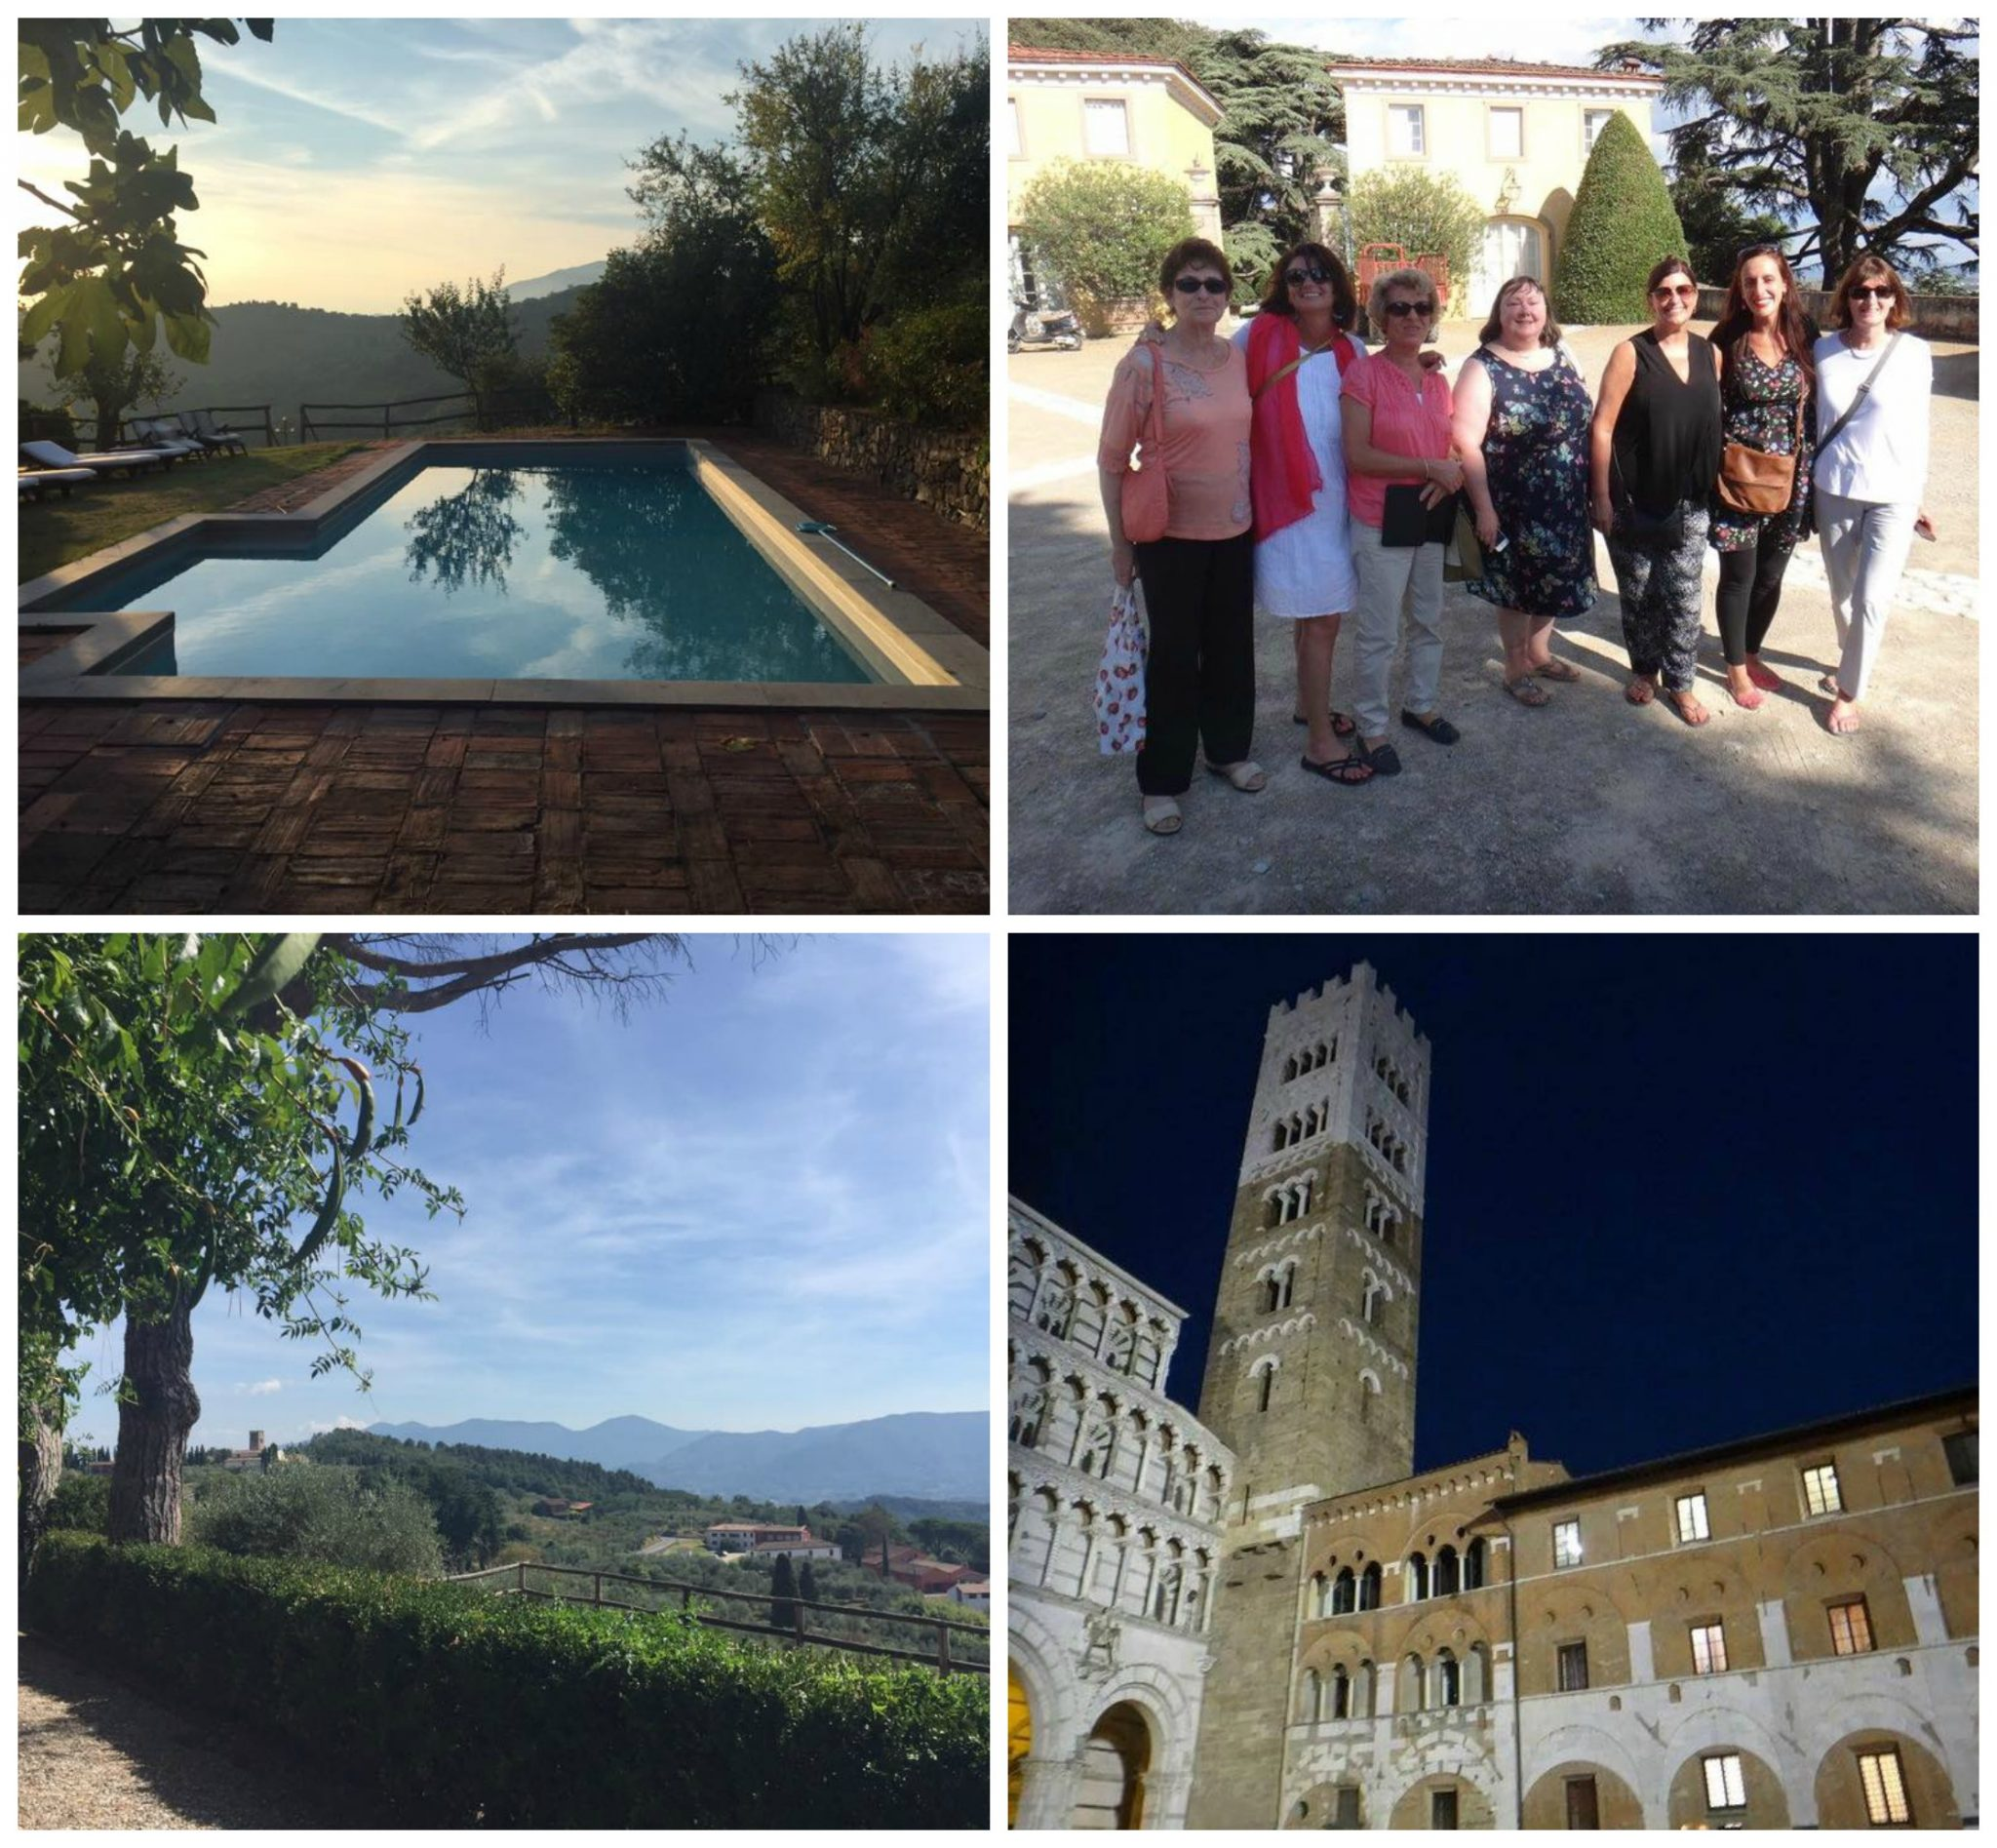 Tuscany photos by guest Sandra